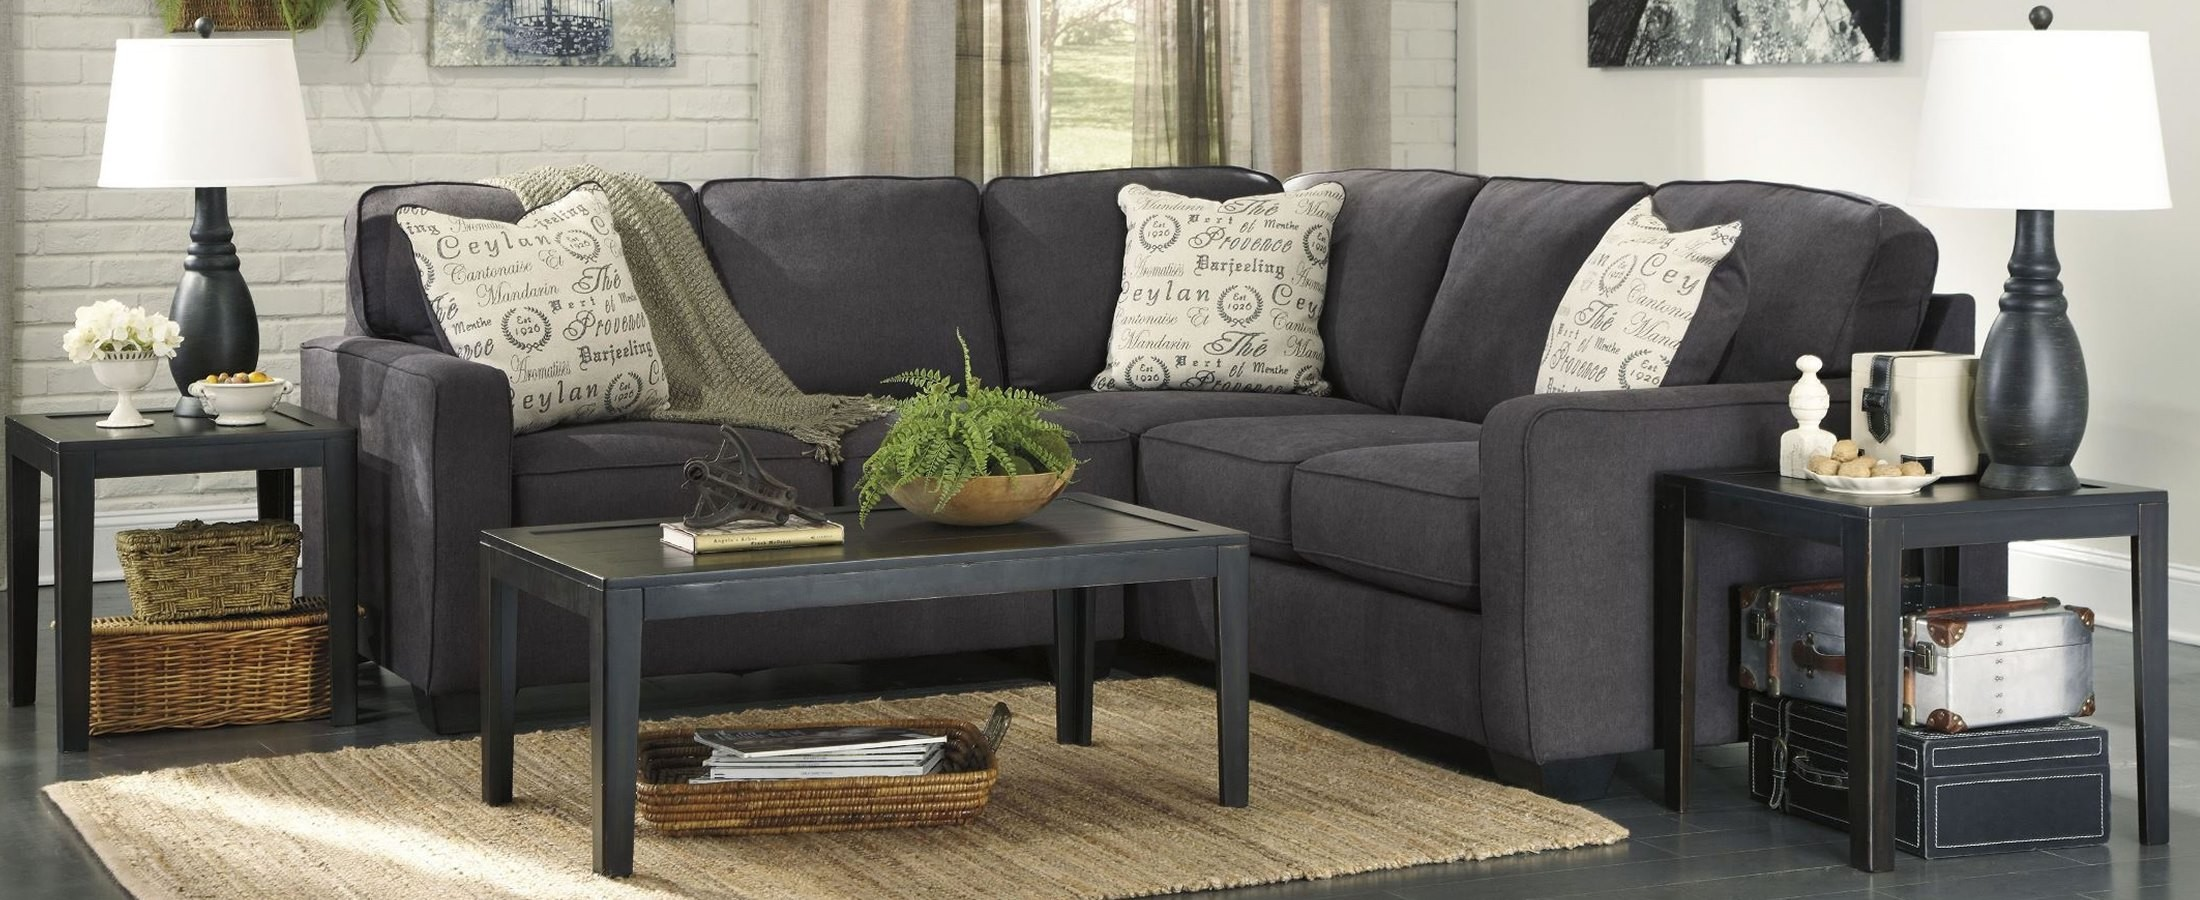 Alenya Charcoal Raf Sectional From Ashley 16601 56 66